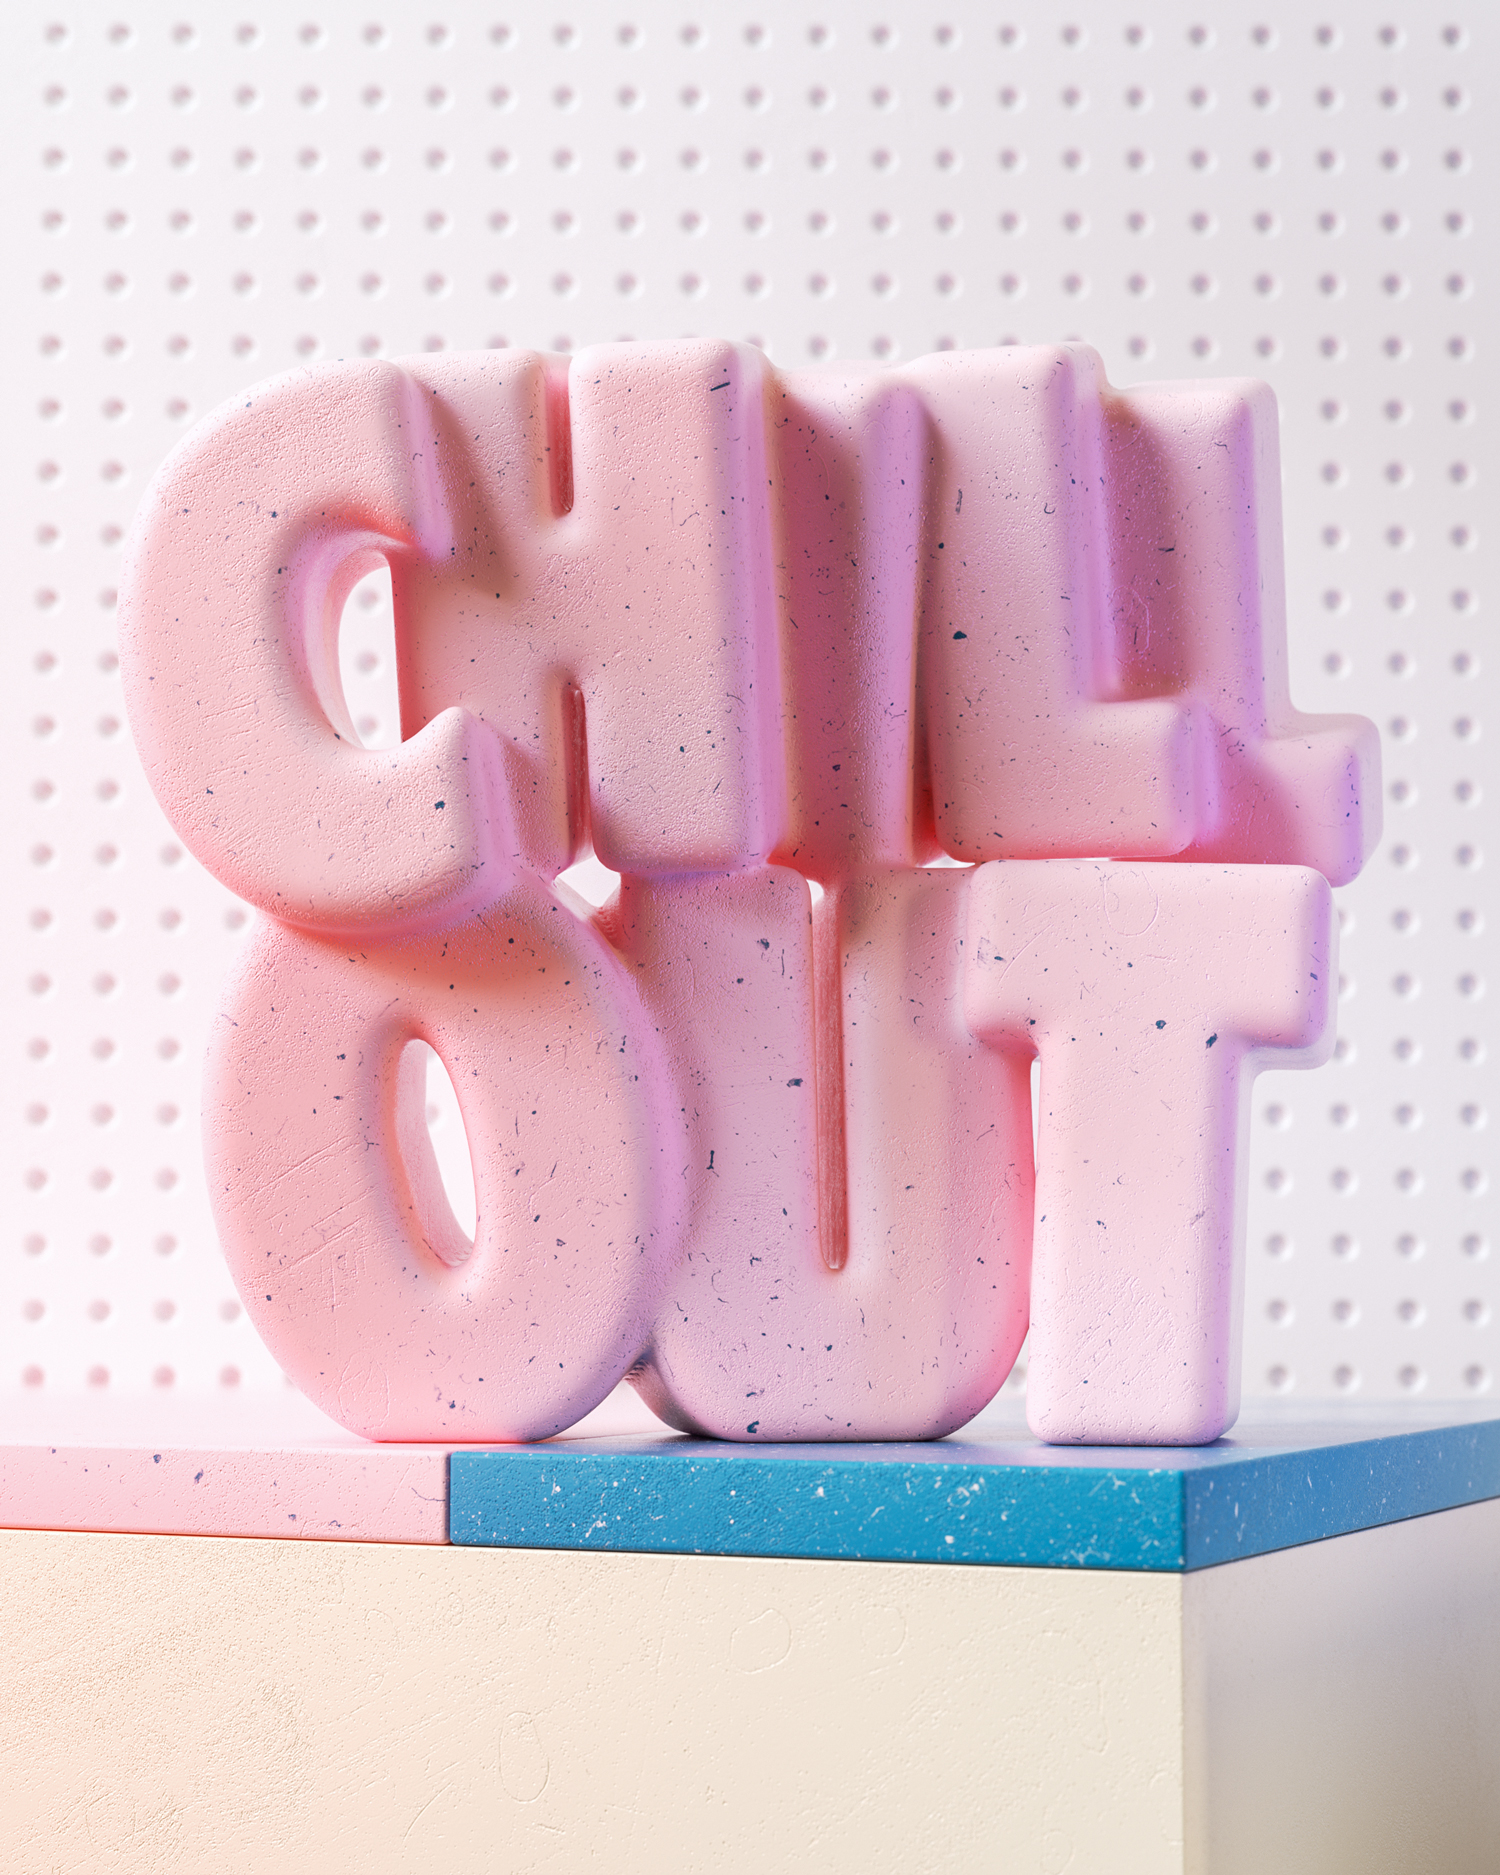 ChillOut-Typography_BenFearnley_Portrait.jpg